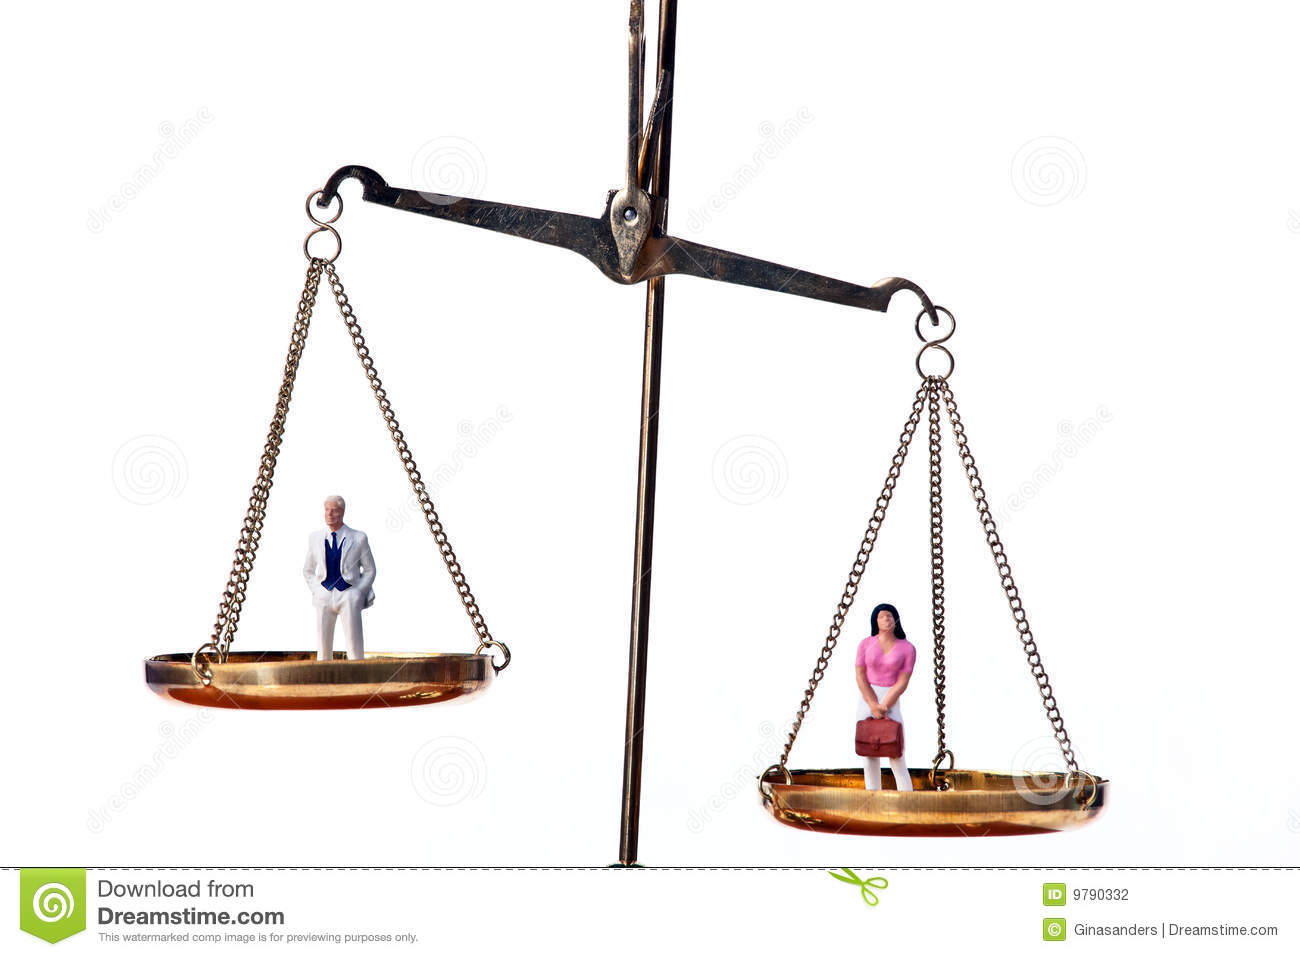 Man and woman on scale. Symbol for equality.